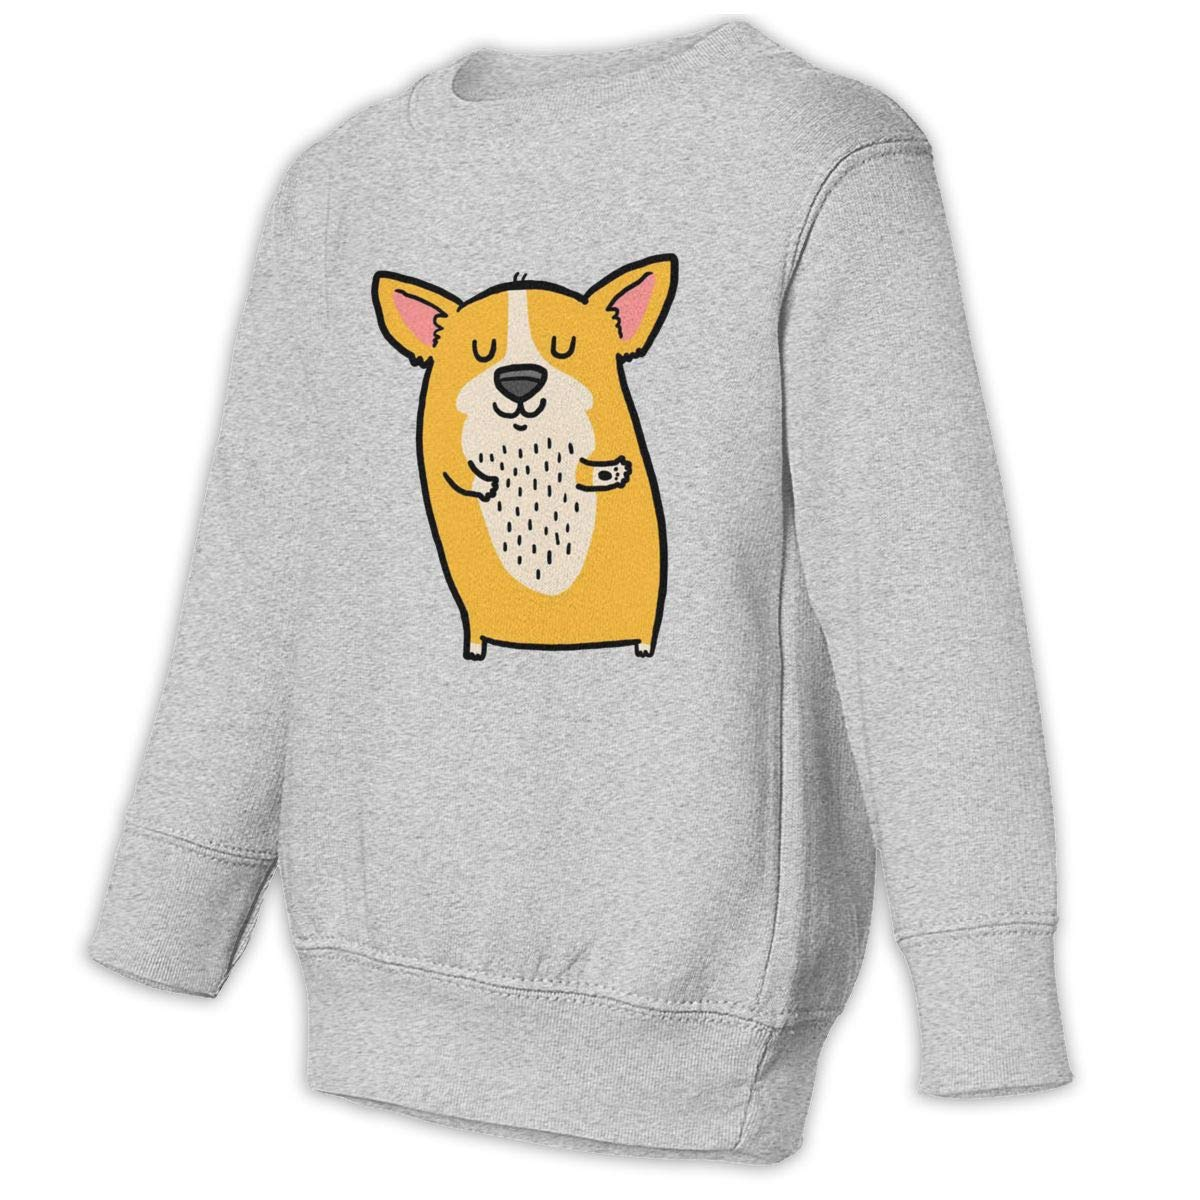 NMDJC CCQ Funny Dancing Dog Baby Sweatshirt Lovely Toddler Hoodies Soft Pullovers